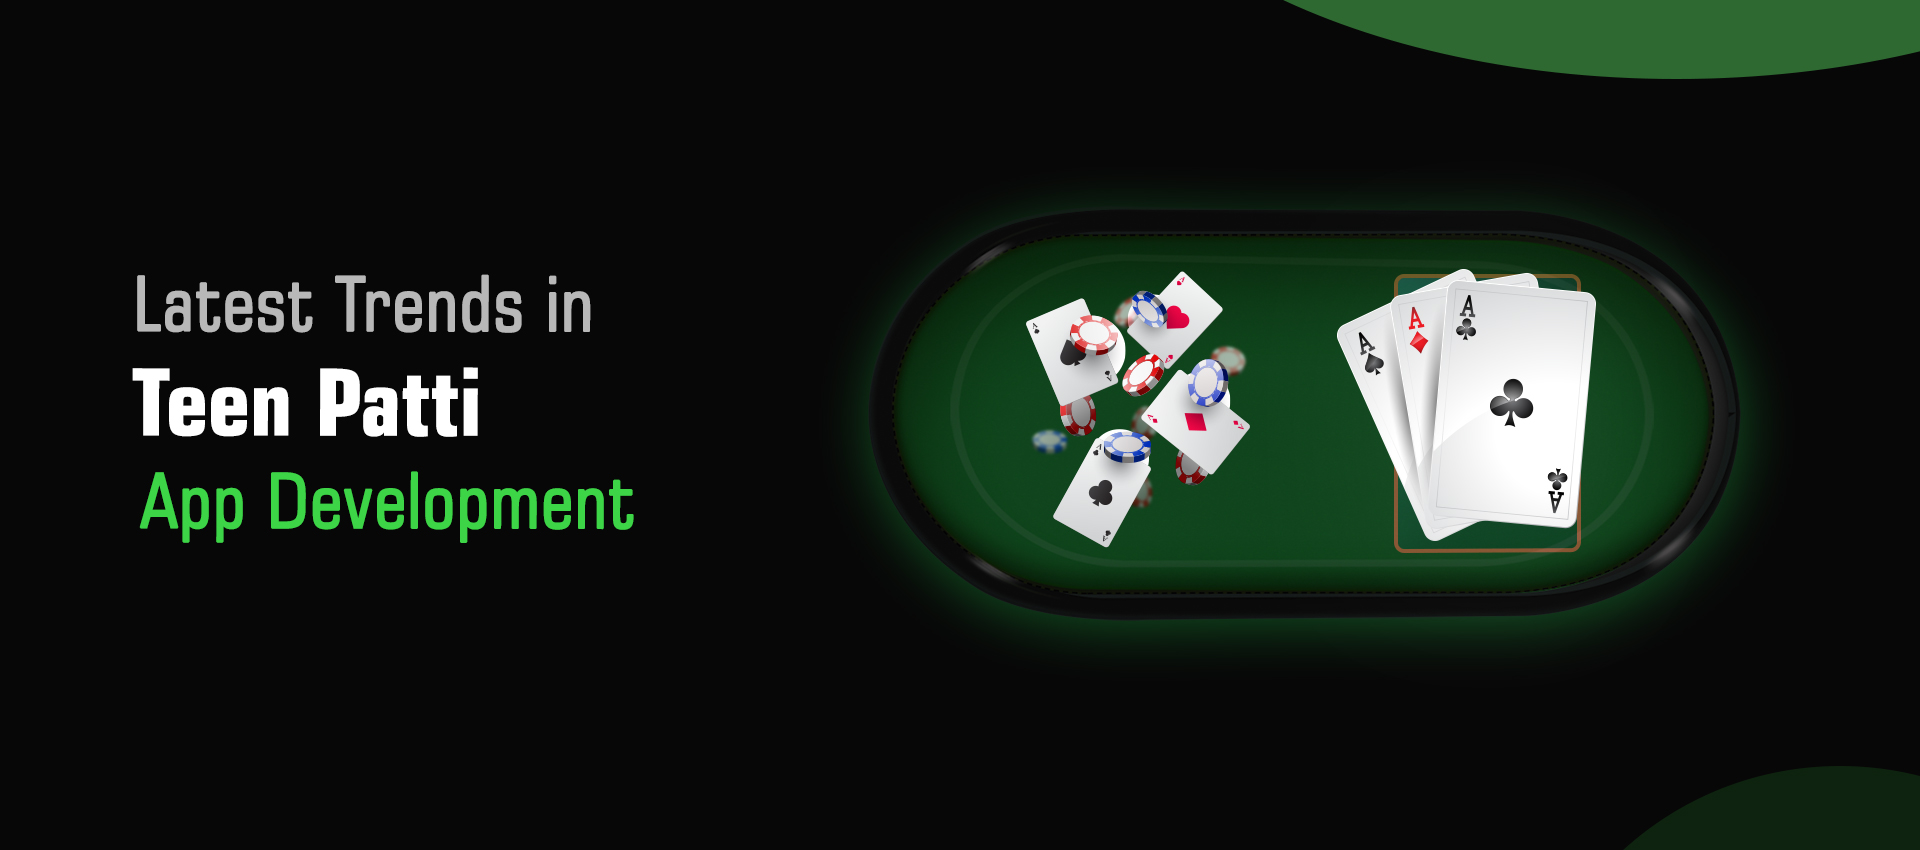 Let's Find Out the Latest Trends in Teen Patti App Development